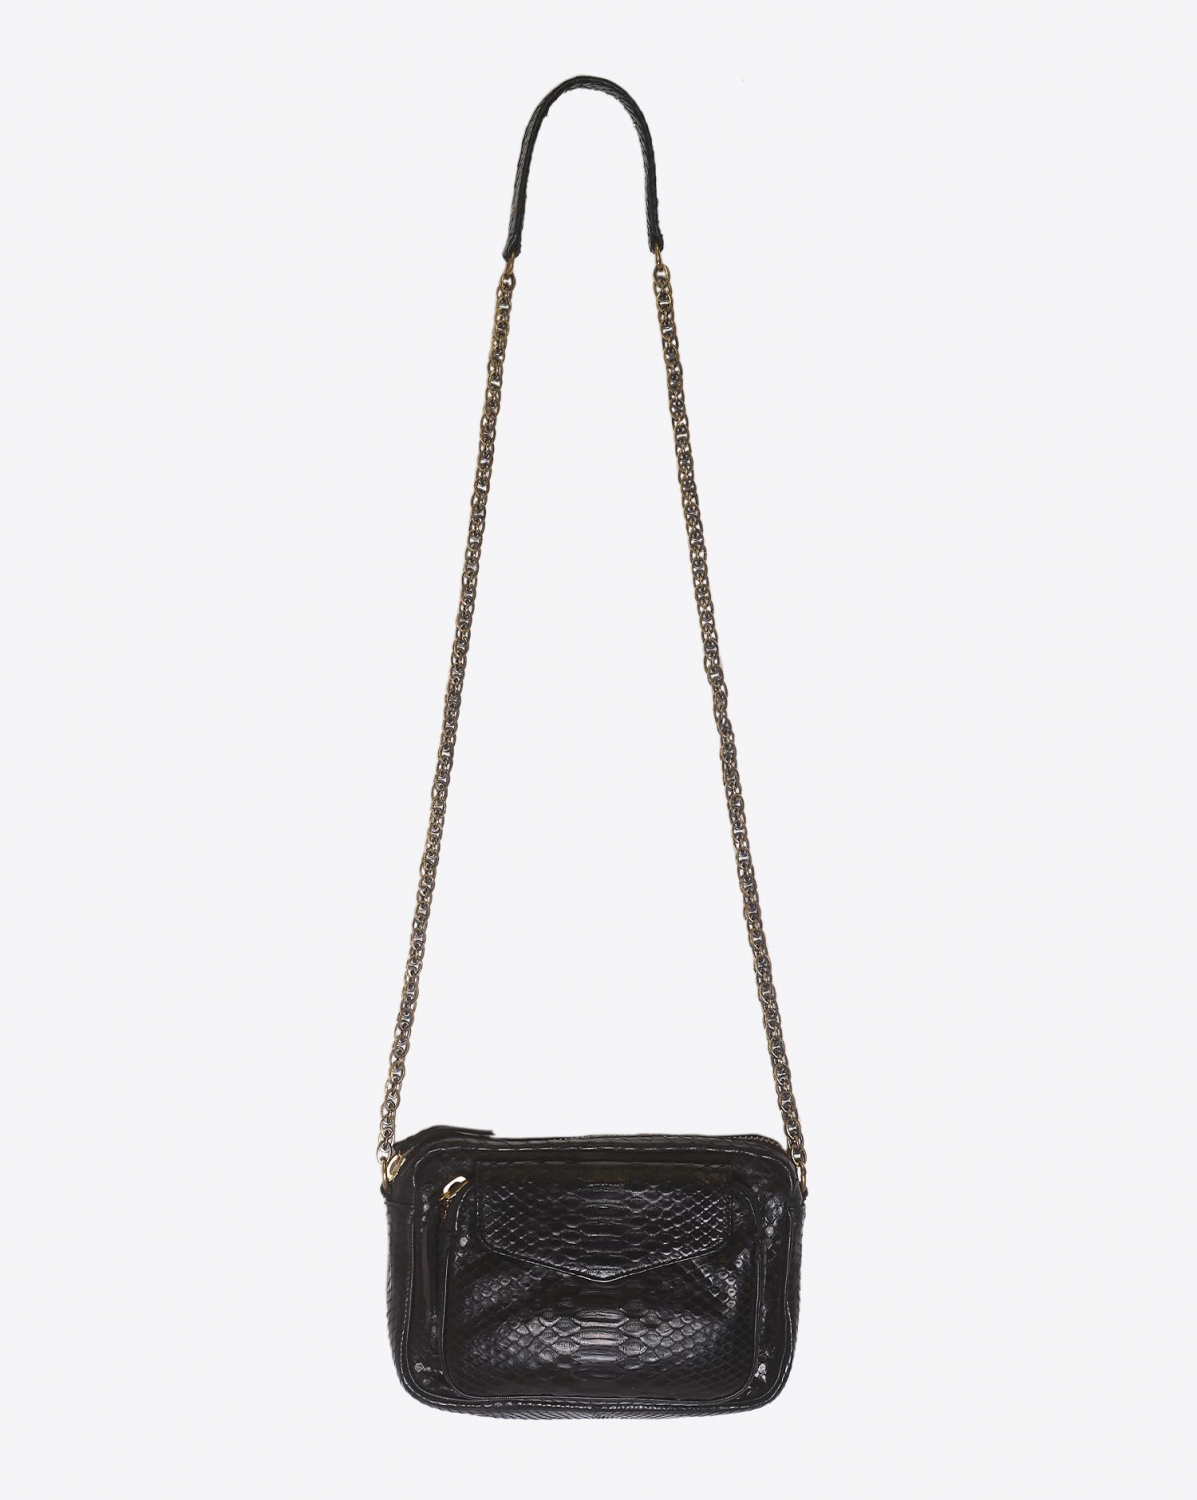 Claris Virot Sac Python Charly Noir Chaine Or